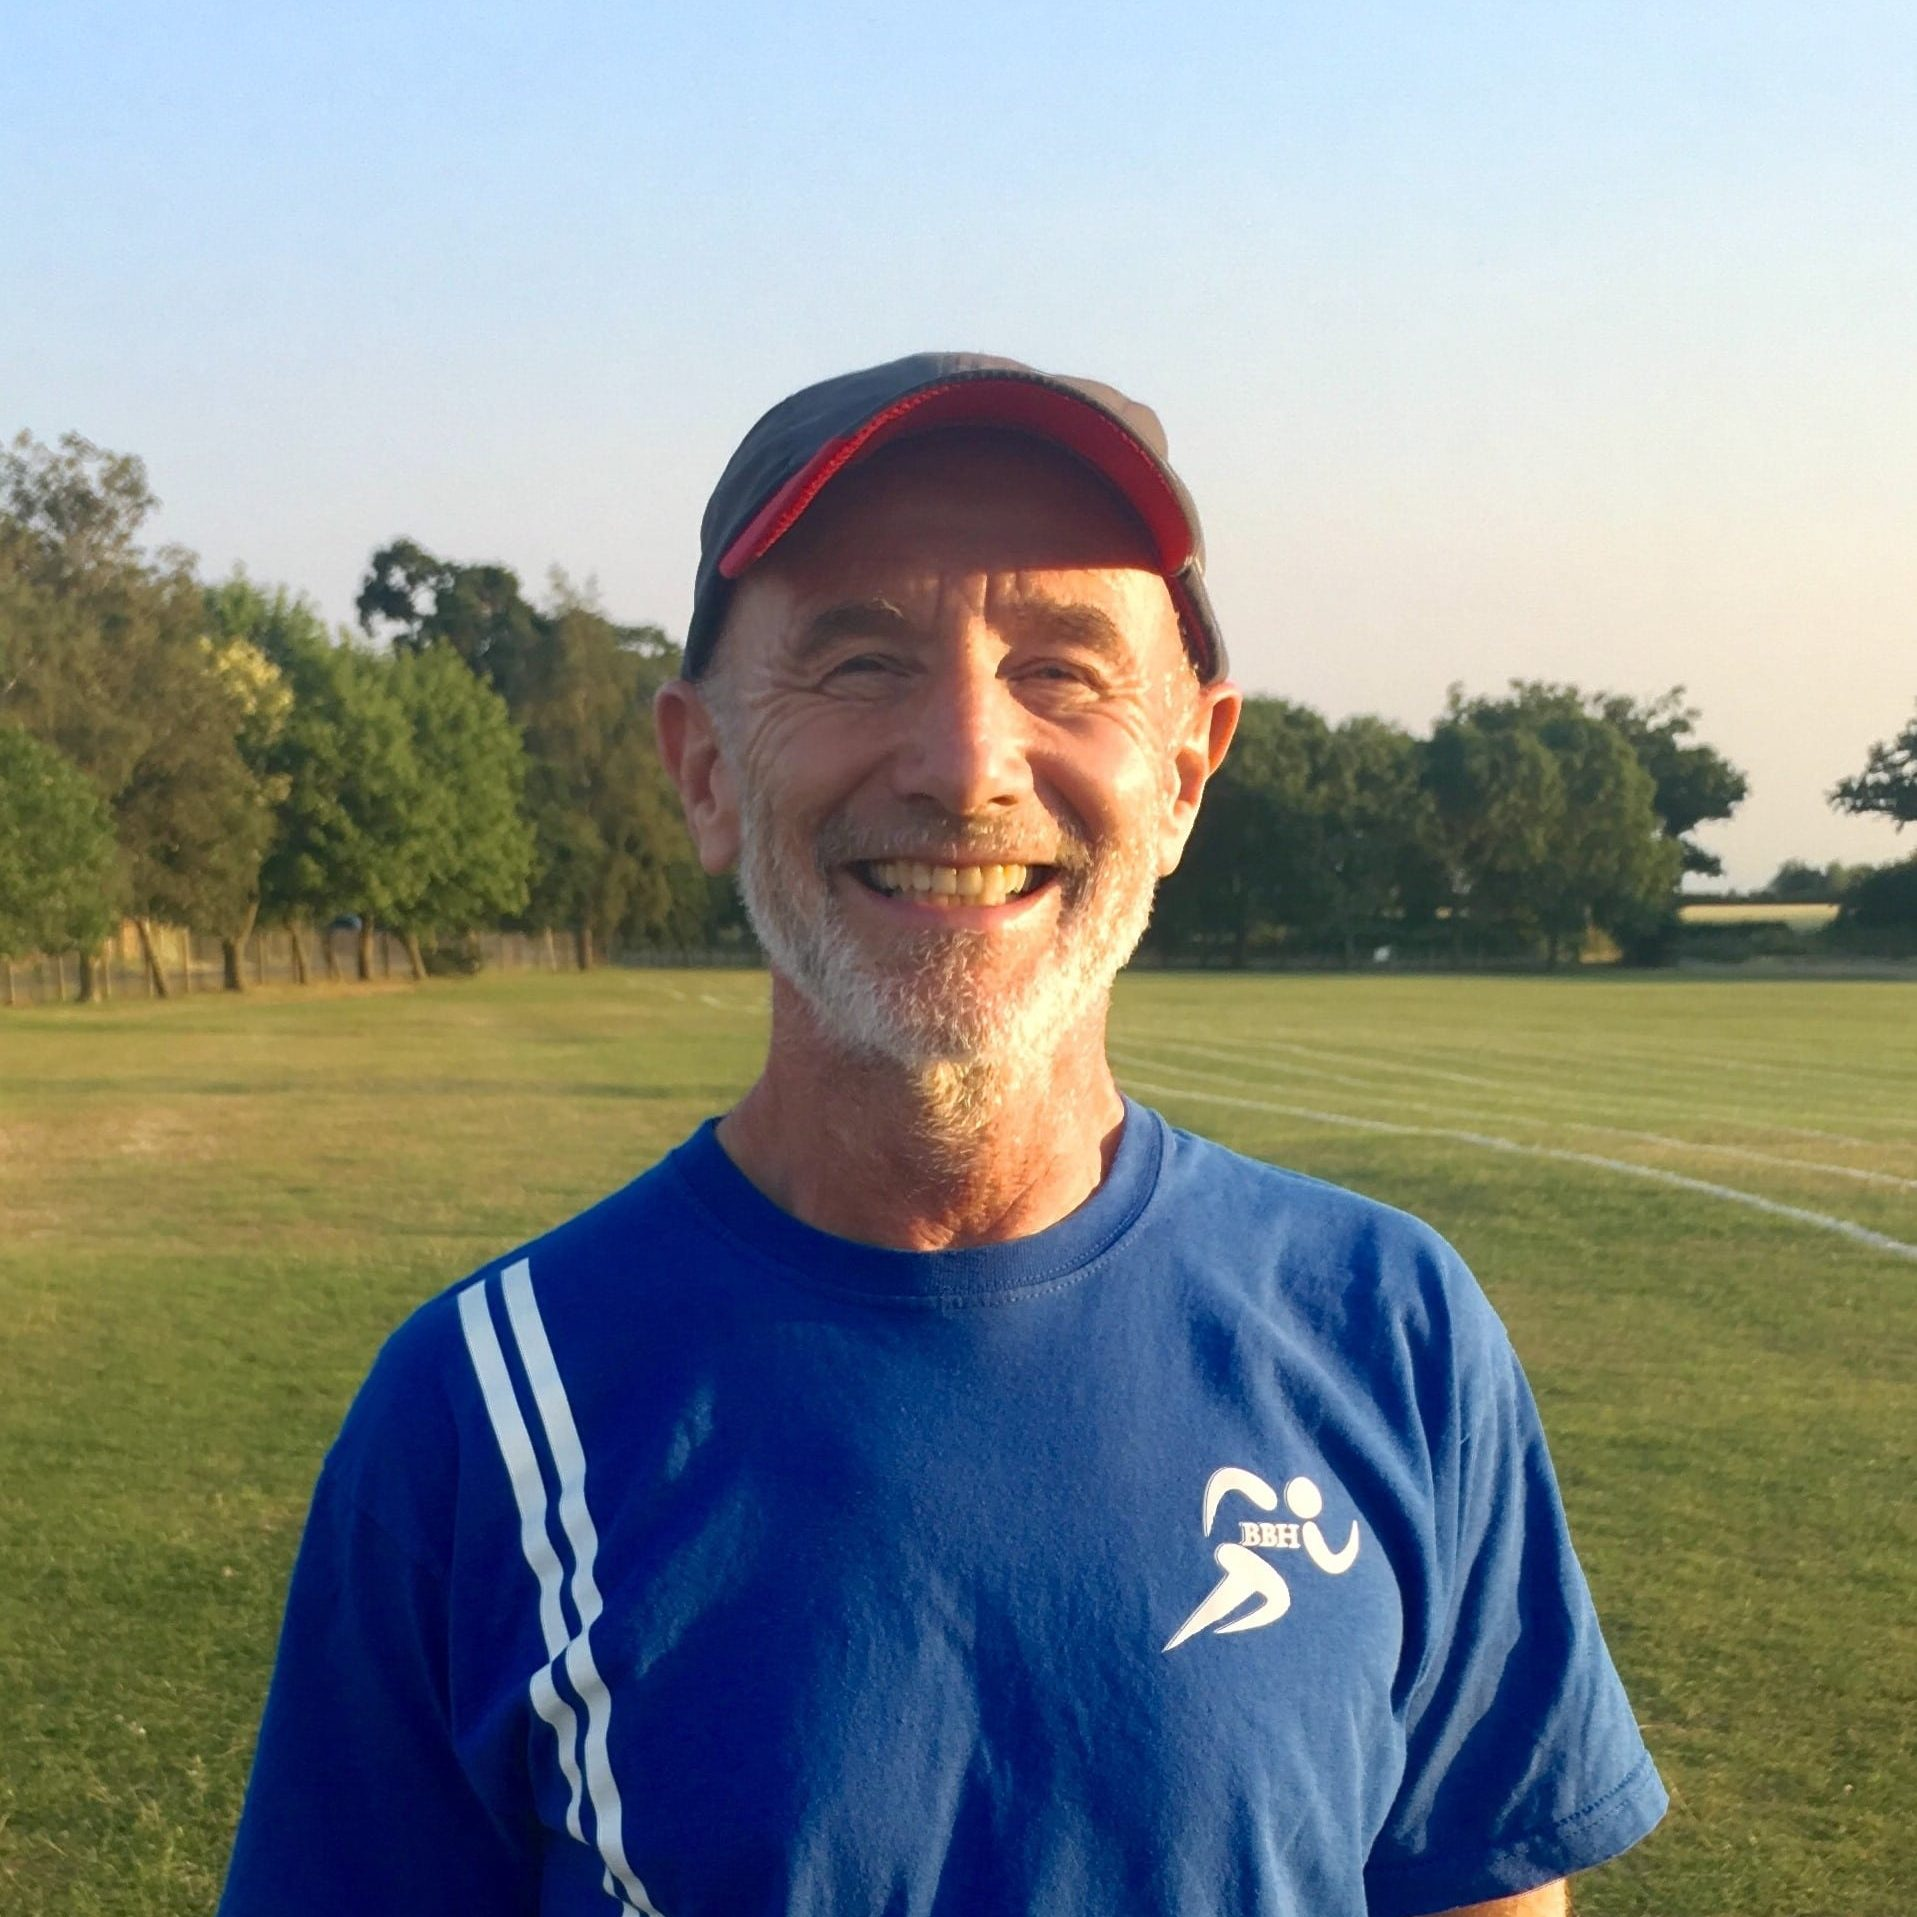 STEPHEN HARVEY - Athletics Coach (L2) - Speed